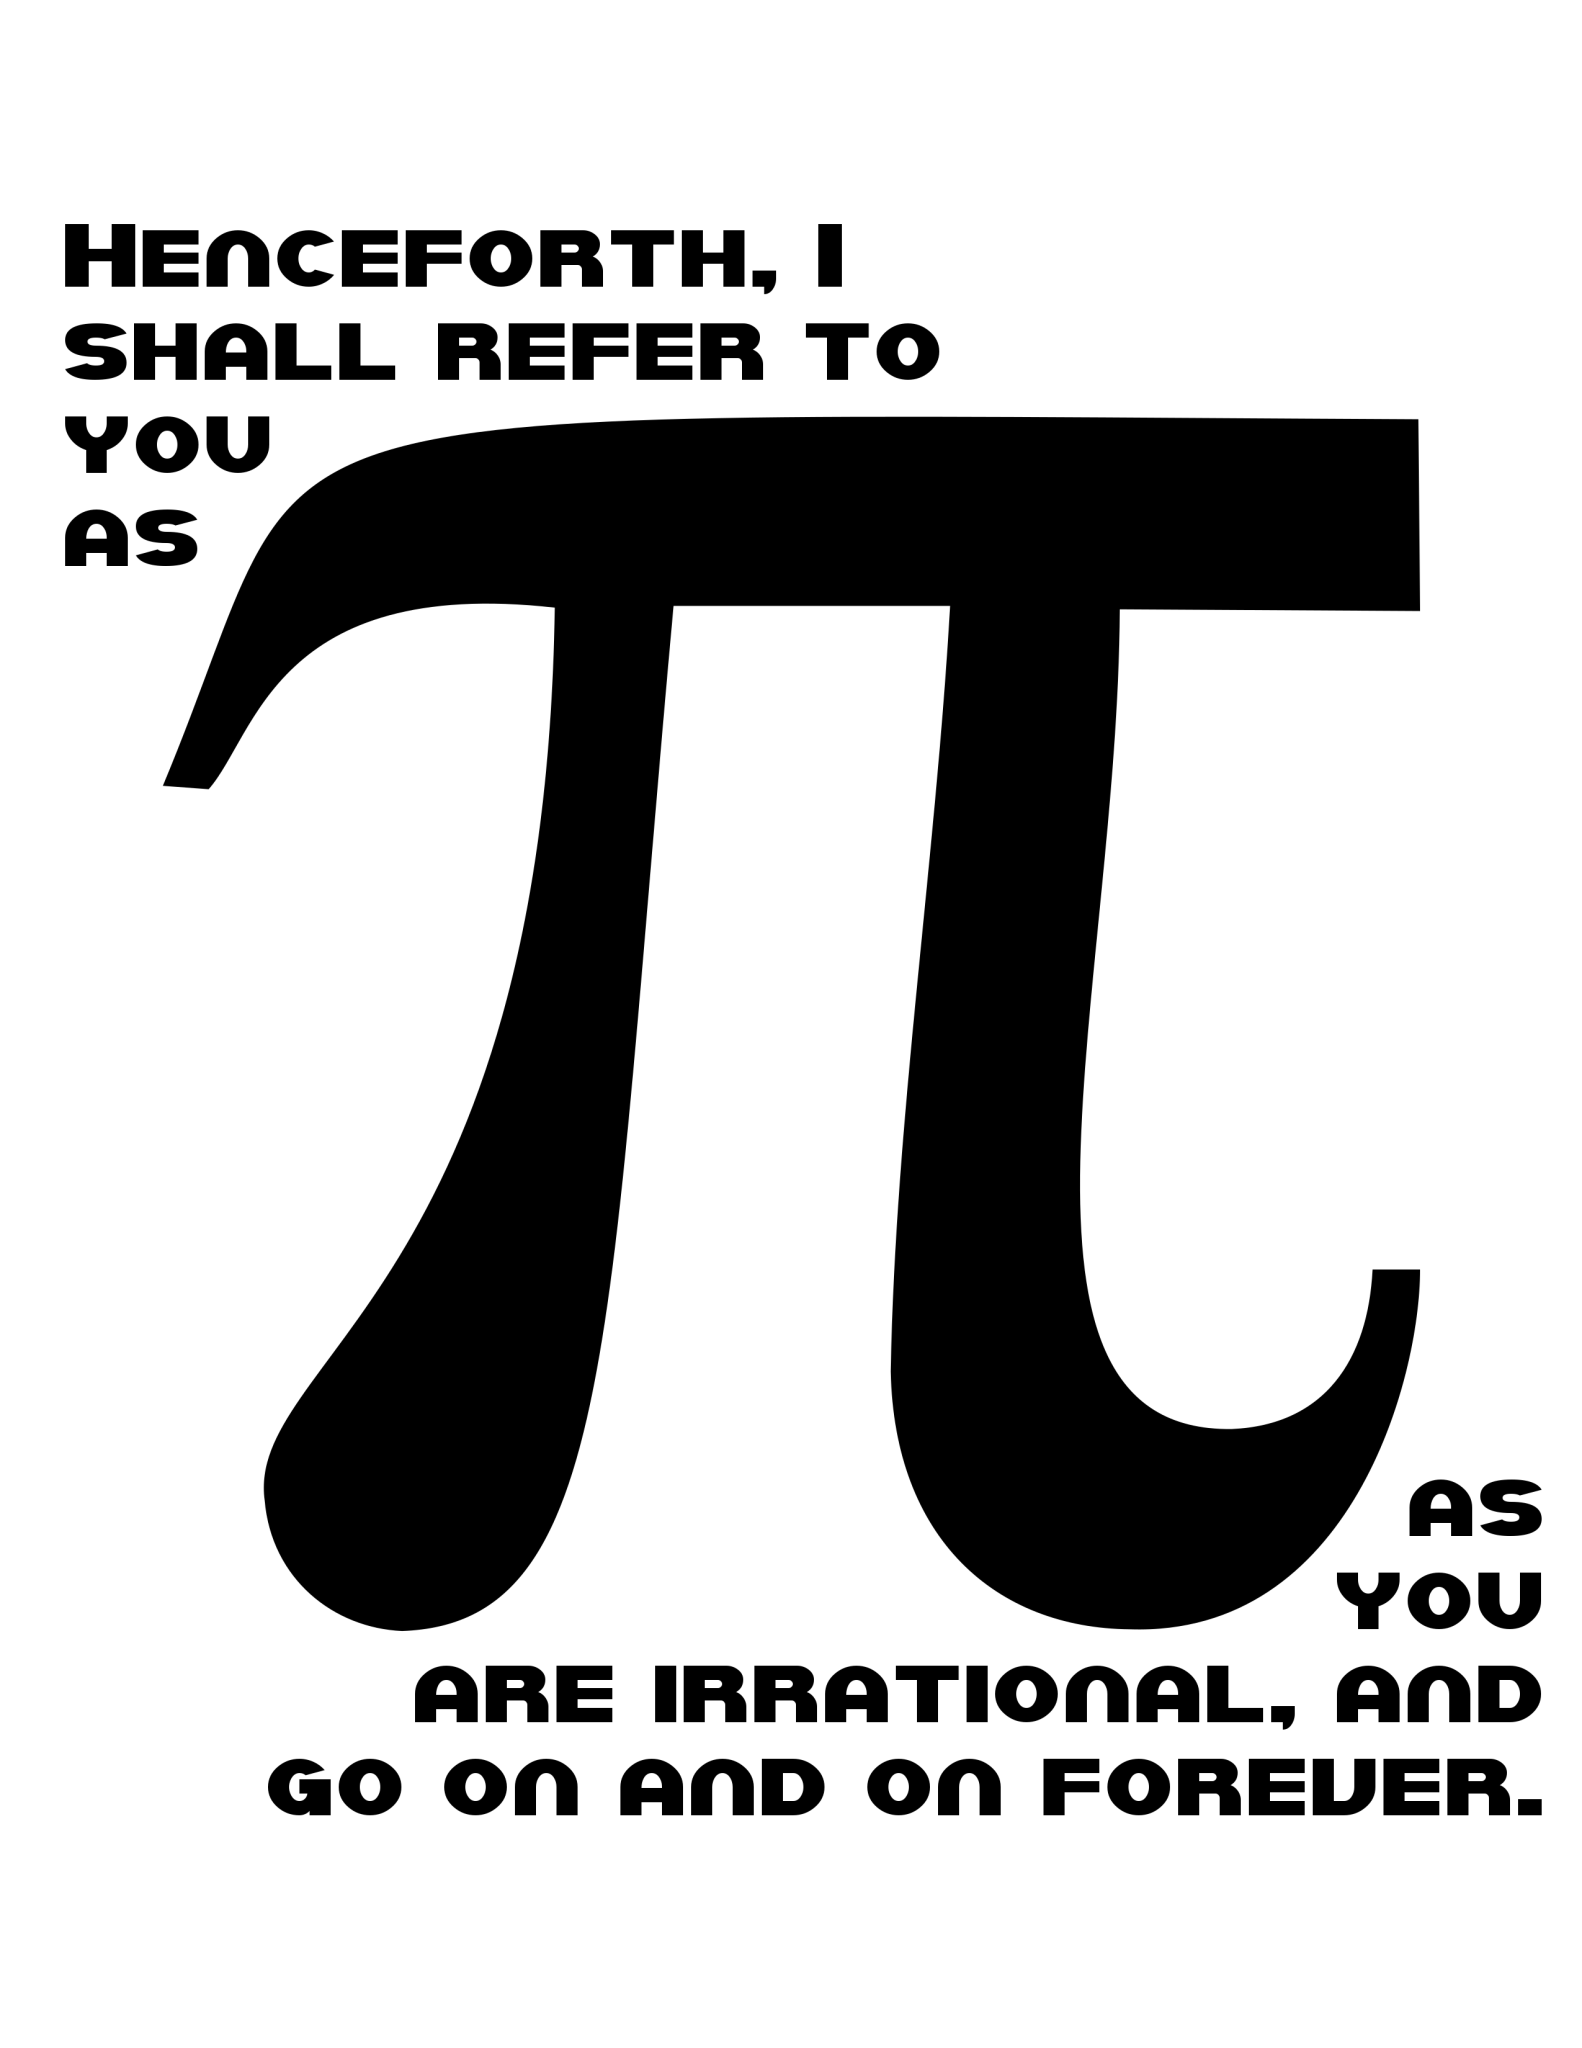 Henceforth, I shall refer to you as Pi tee design